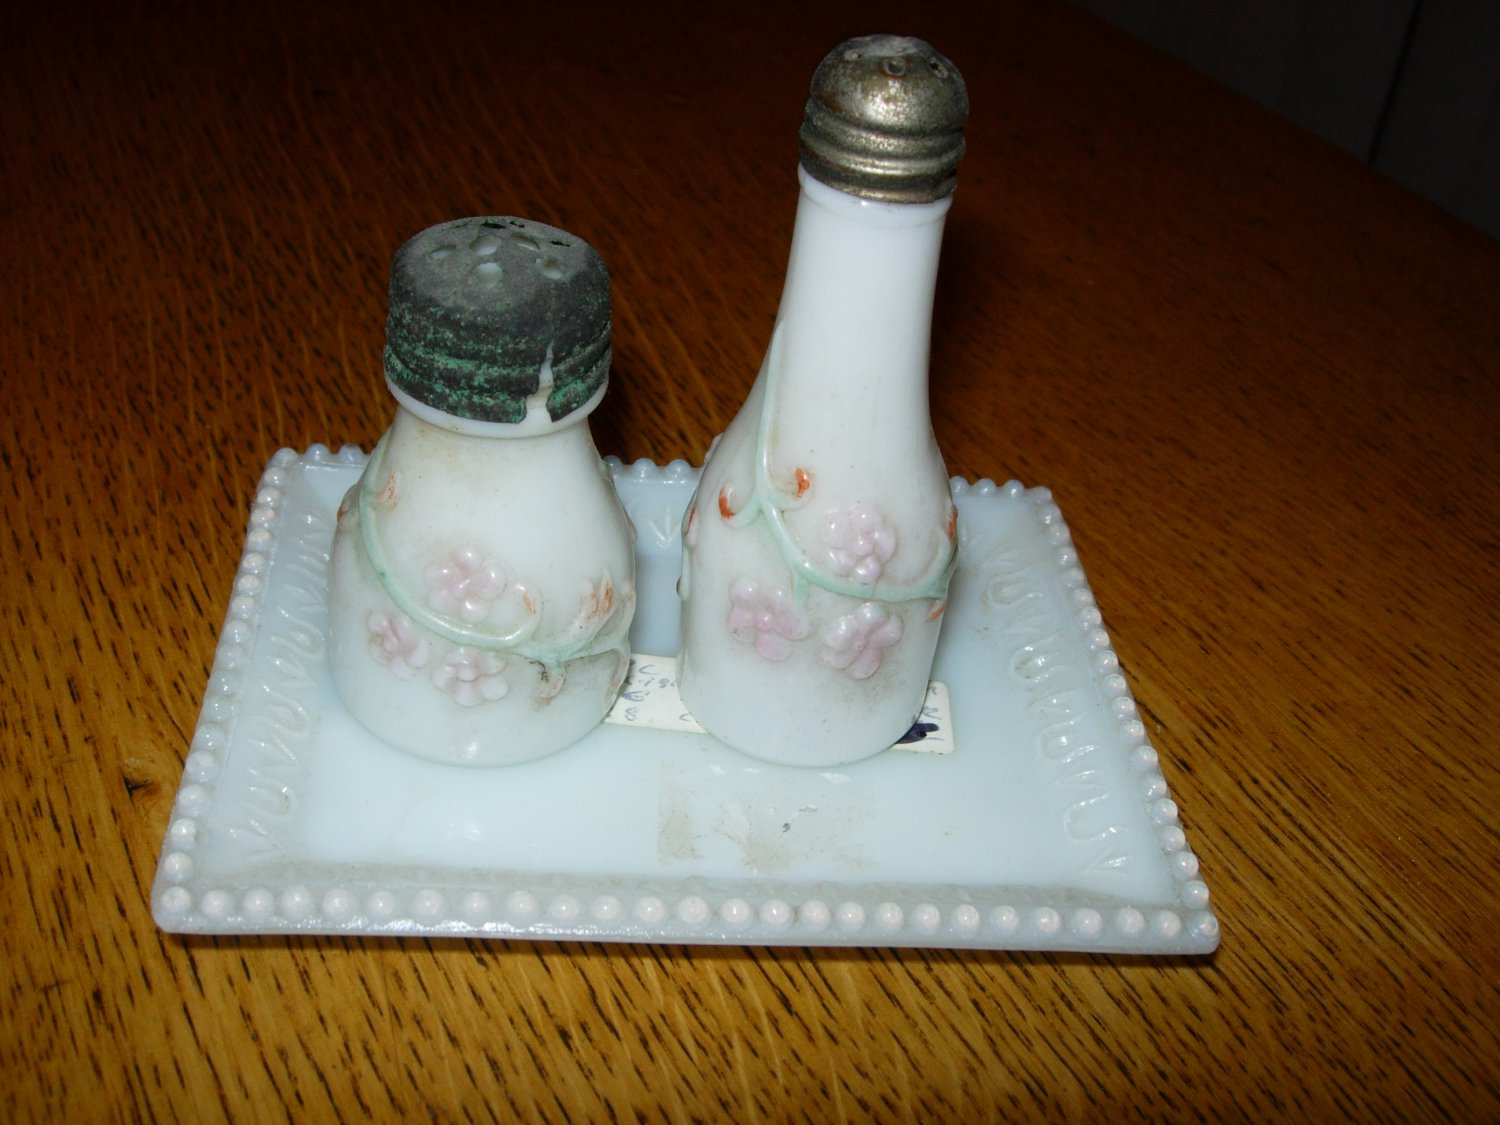 Victorian Milk Glass Forget-Me-Not-Peewee & Companion Salt & Pepper Shakers W/Tray